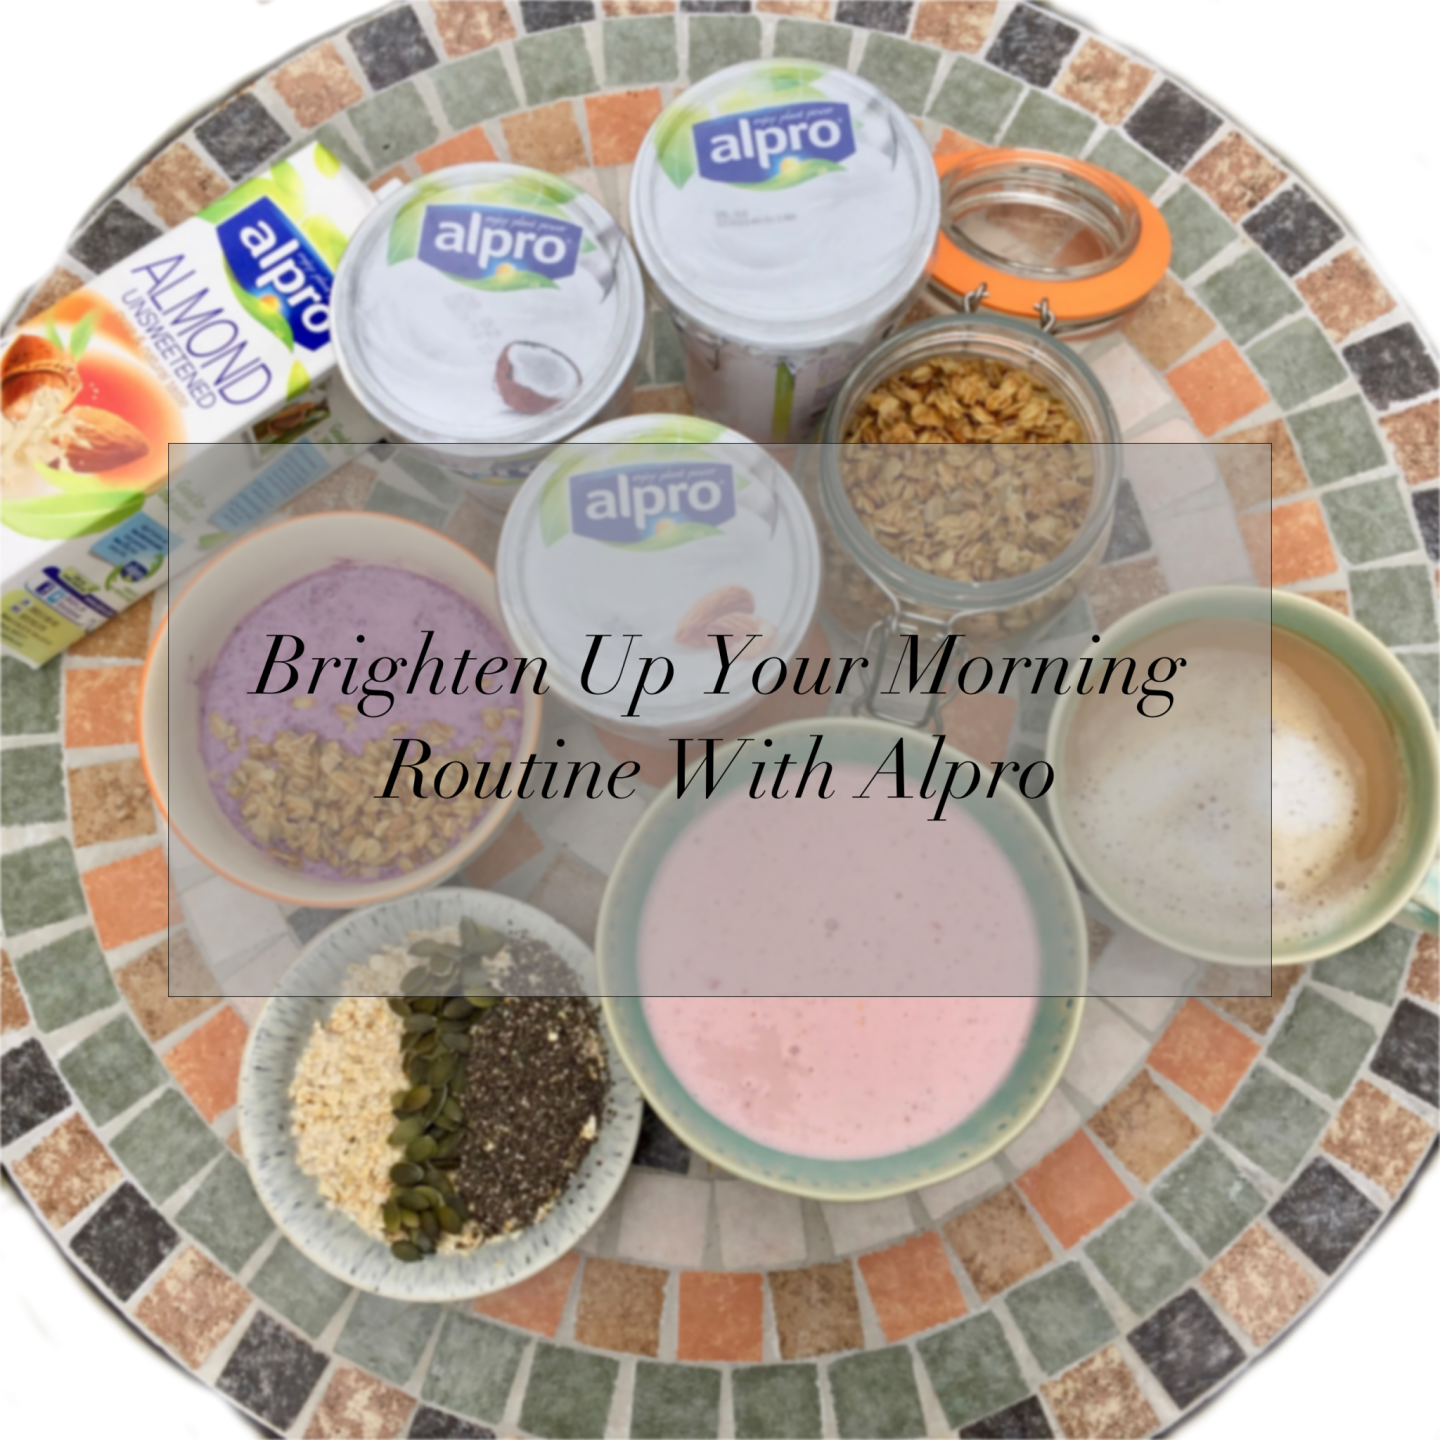 Brighten Up Your Morning Routine With Alpro